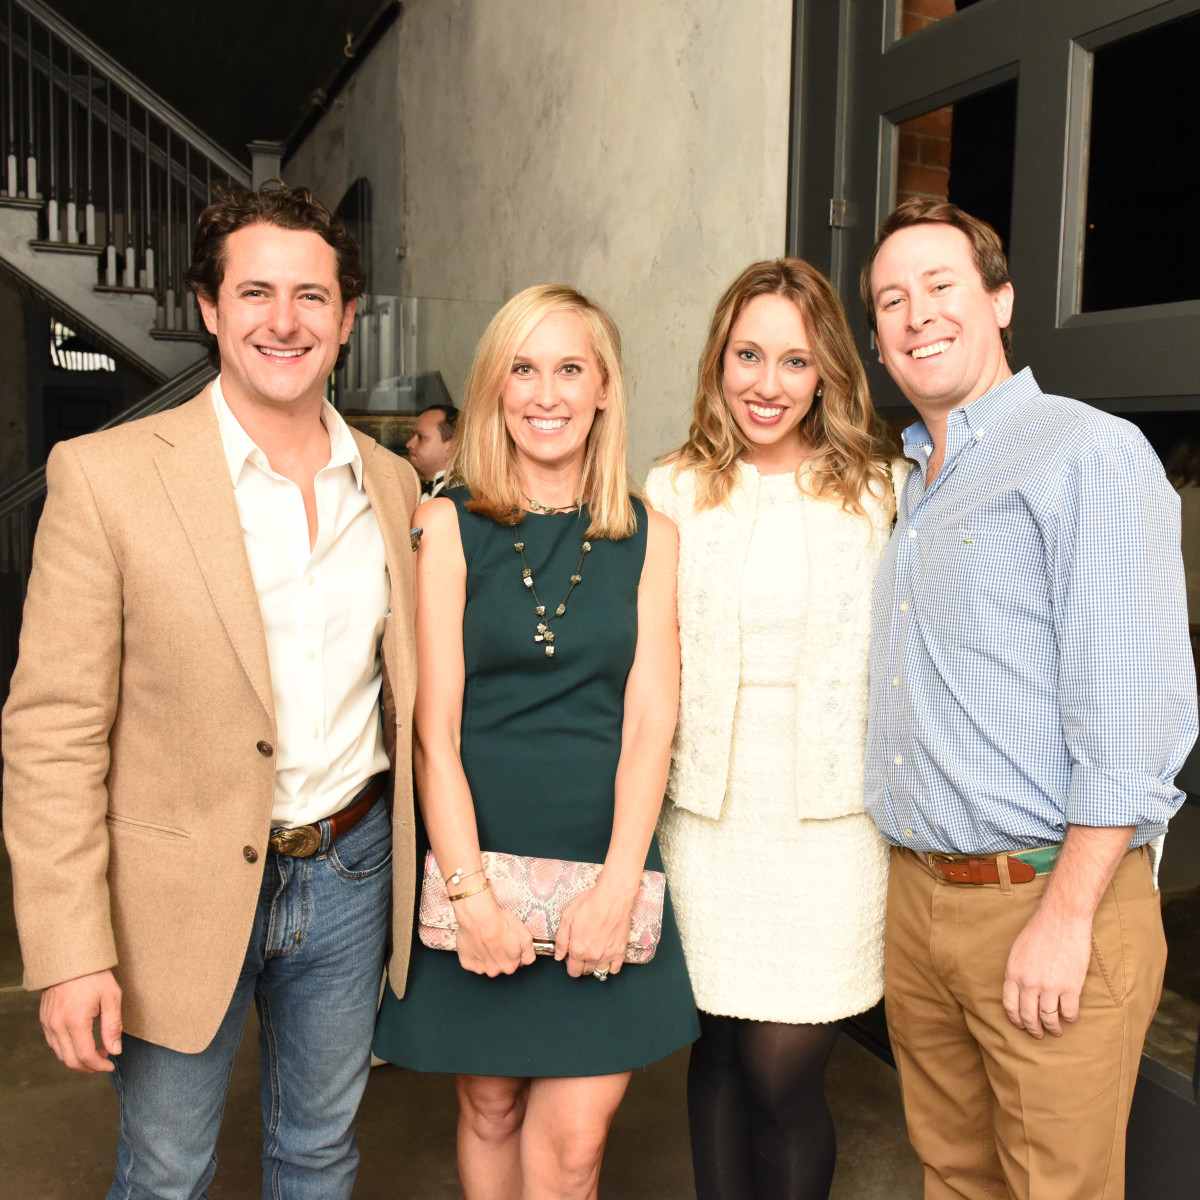 News, Pier & Beam party, Dec. 2015, David Denenburg, Lexie Boudreaux, Frani Denenburg, Aaron Boudreaux.